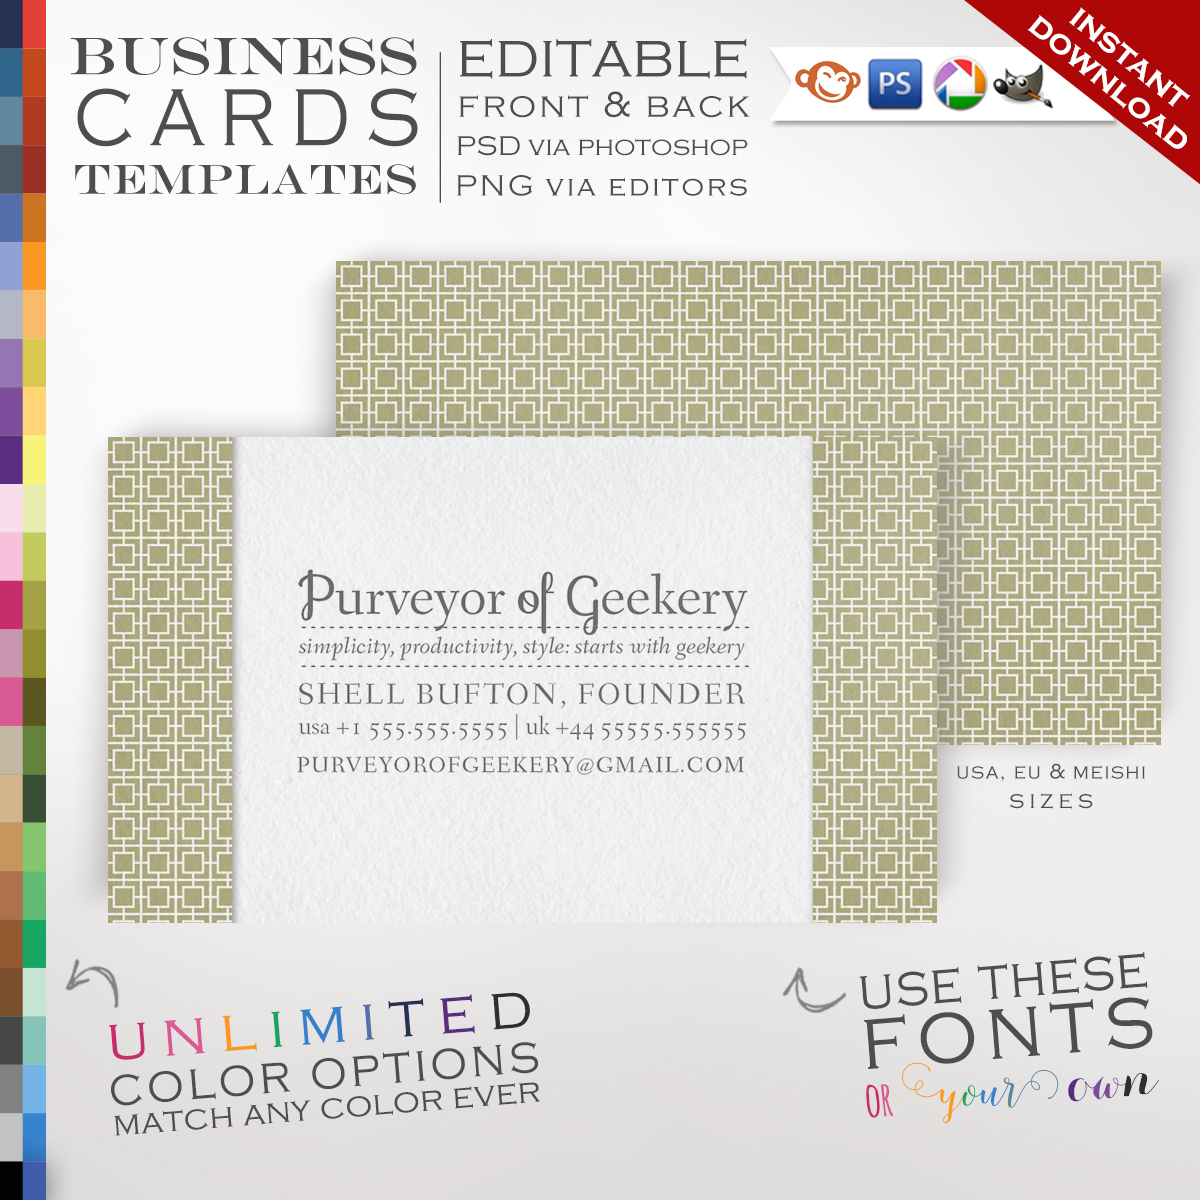 Premade mod squares business cards customizable color pattern premade mod squares business cards customizable color pattern margin design double sided pmms photoshop or free editor template faire colourmoves